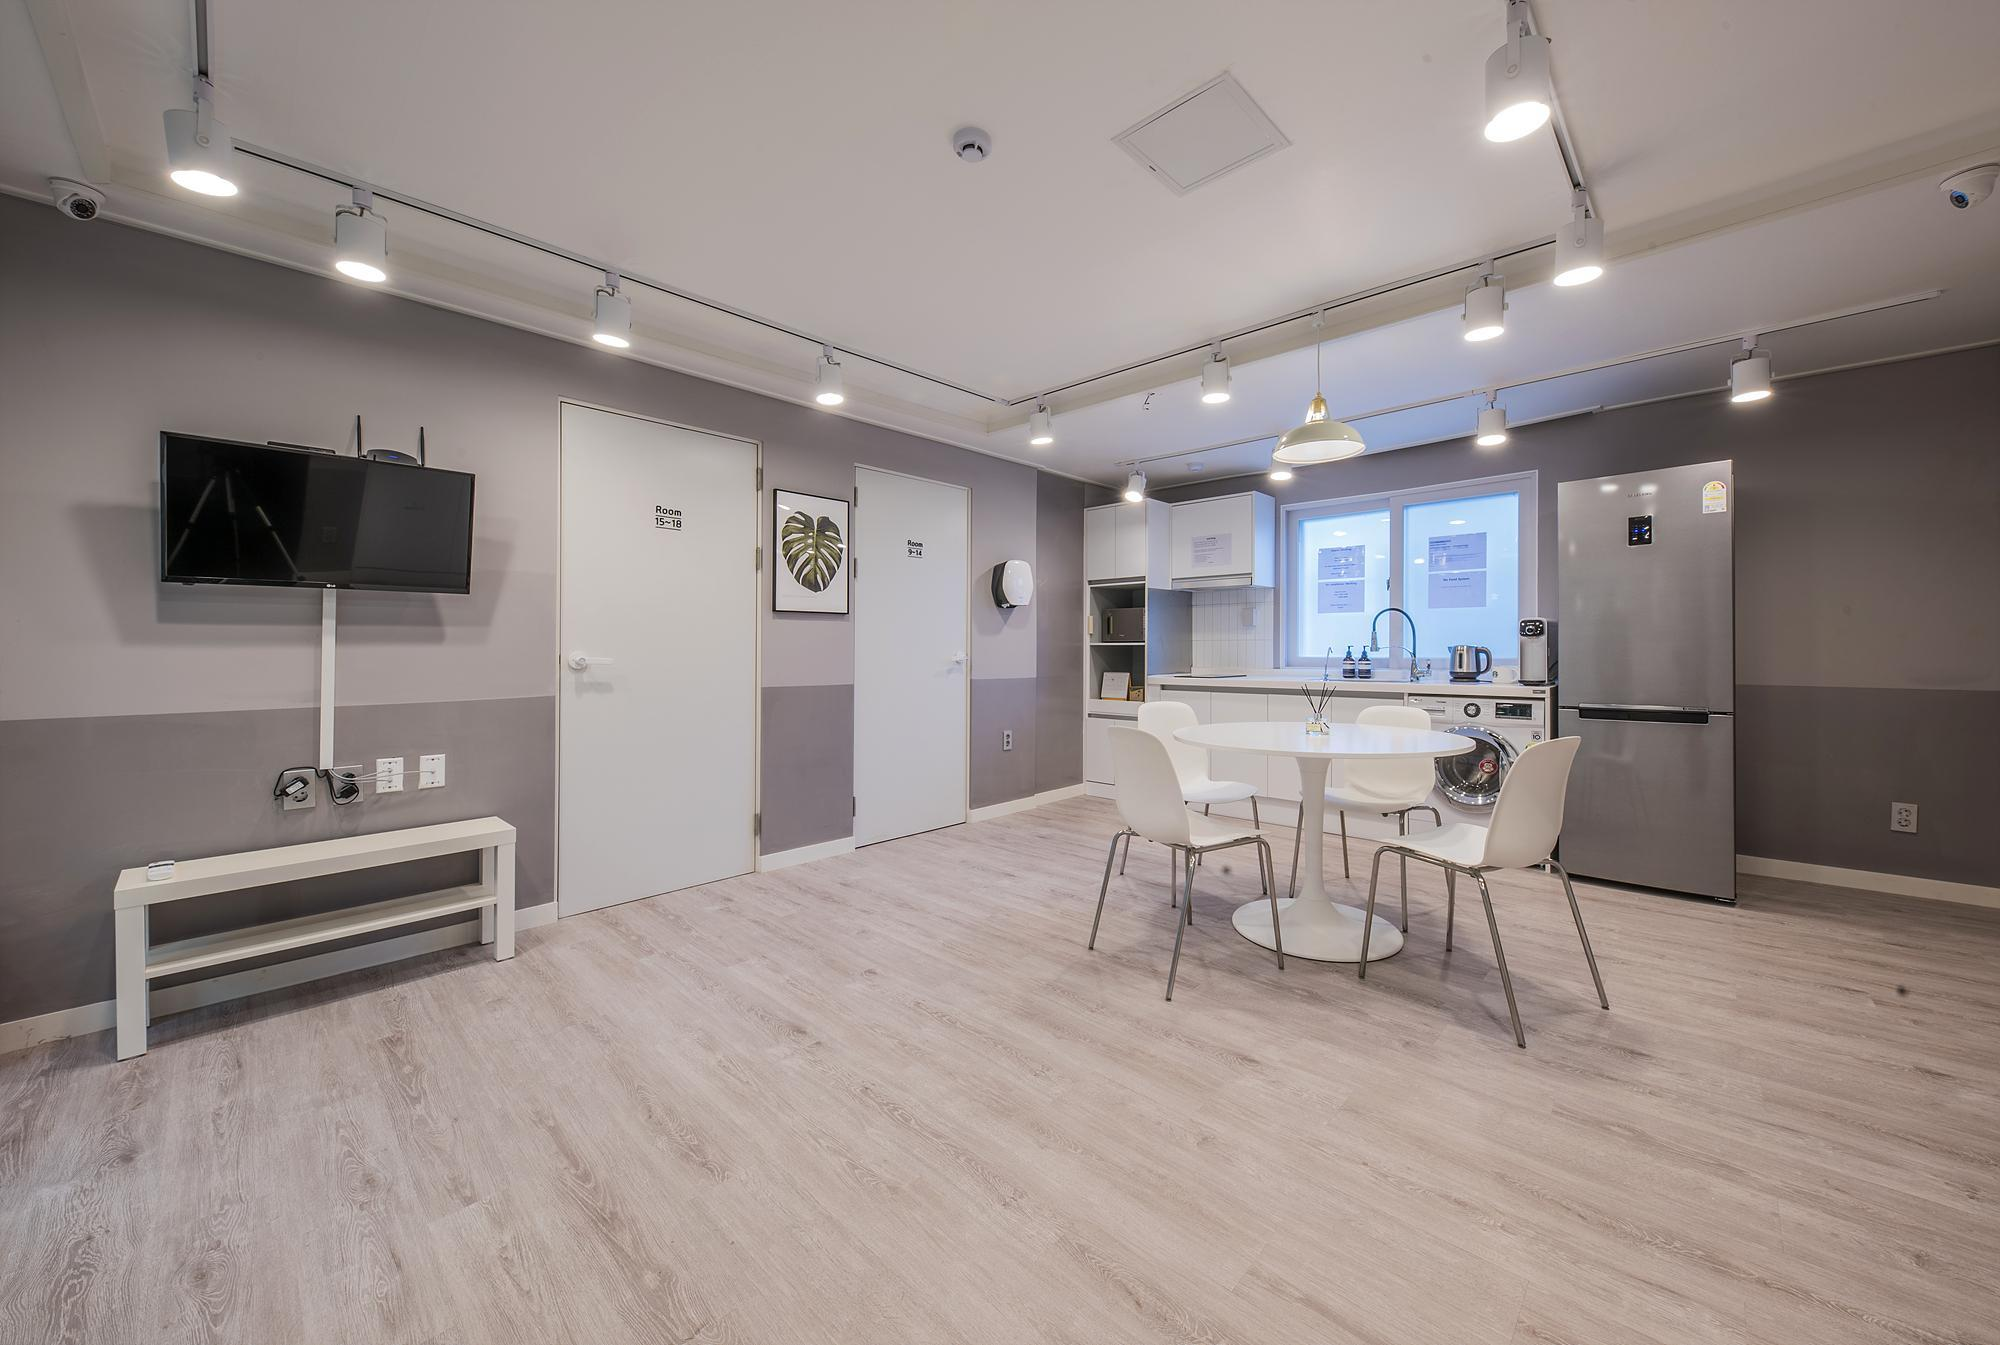 FlexHome Seoul (Foreigners Only), Mapo